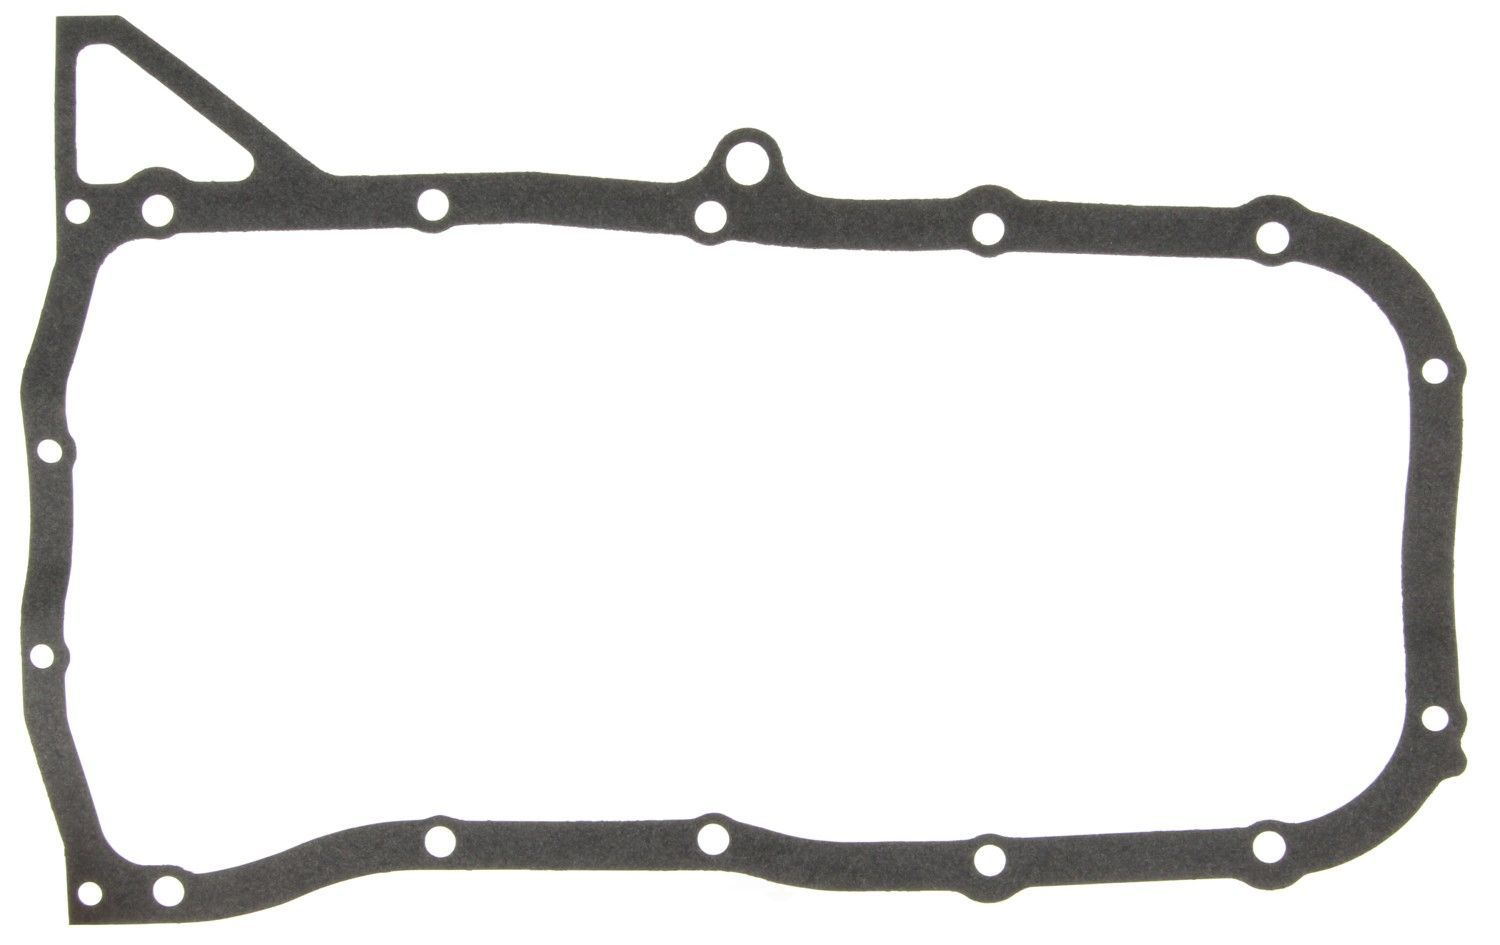 Engine Oil Pan Gasket Mahle Os Fits 93 01 Nissan